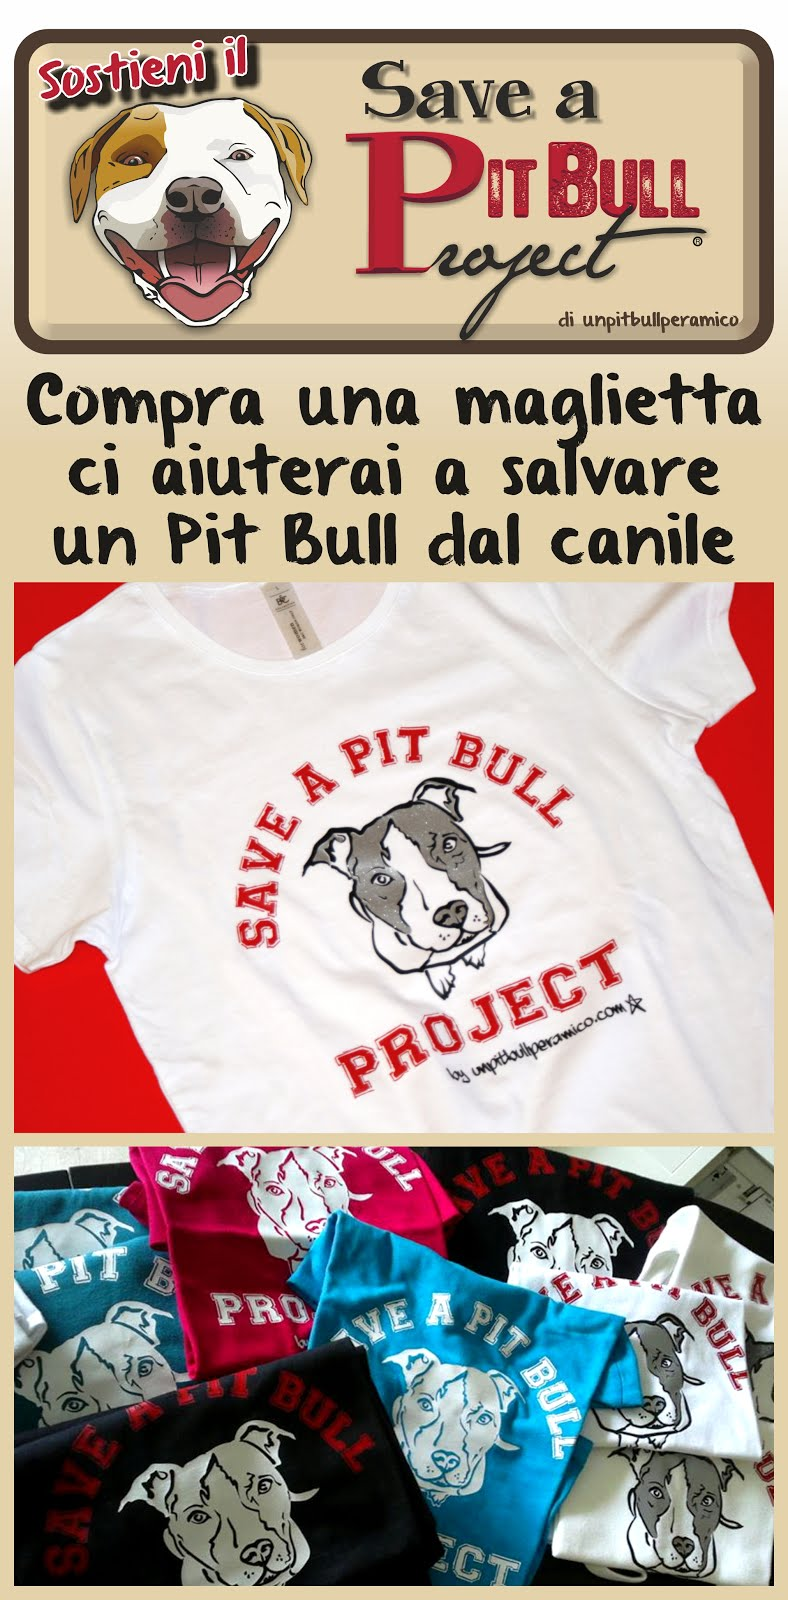 LE T-SHIRT DEL ''SAVE A PIT BULL PROJECT''